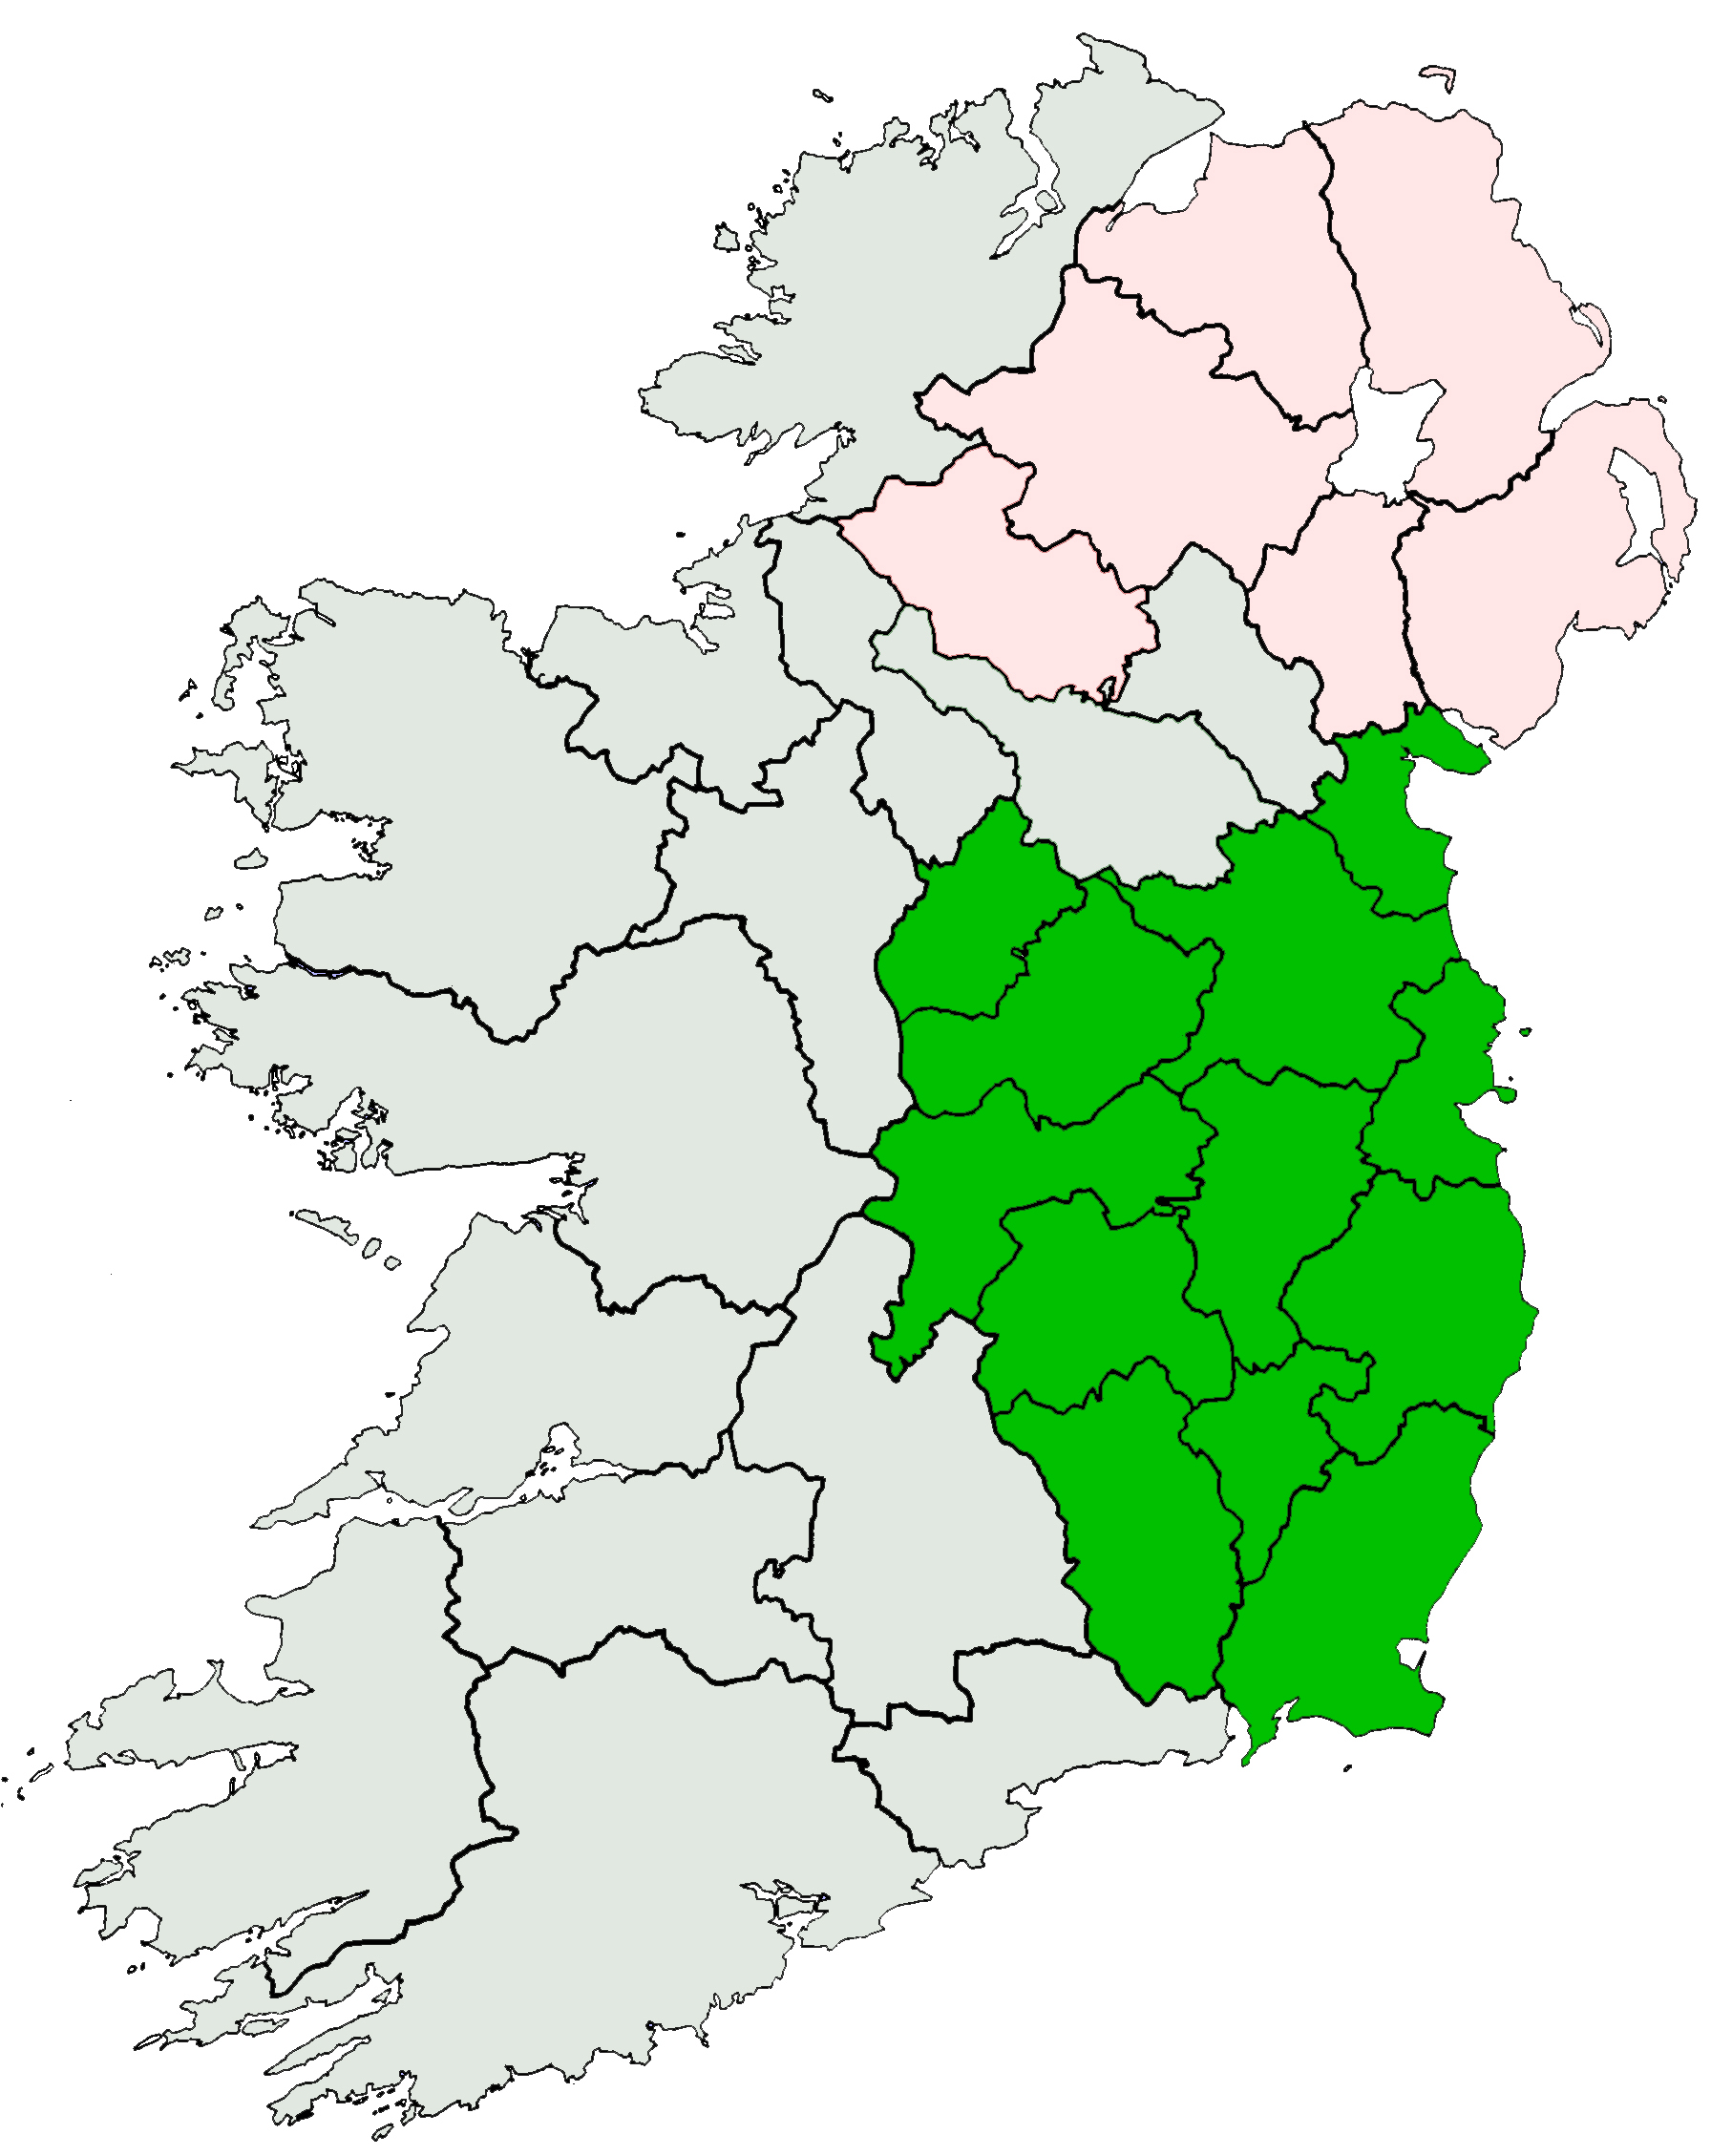 Blank Map Of Ireland With Mountains